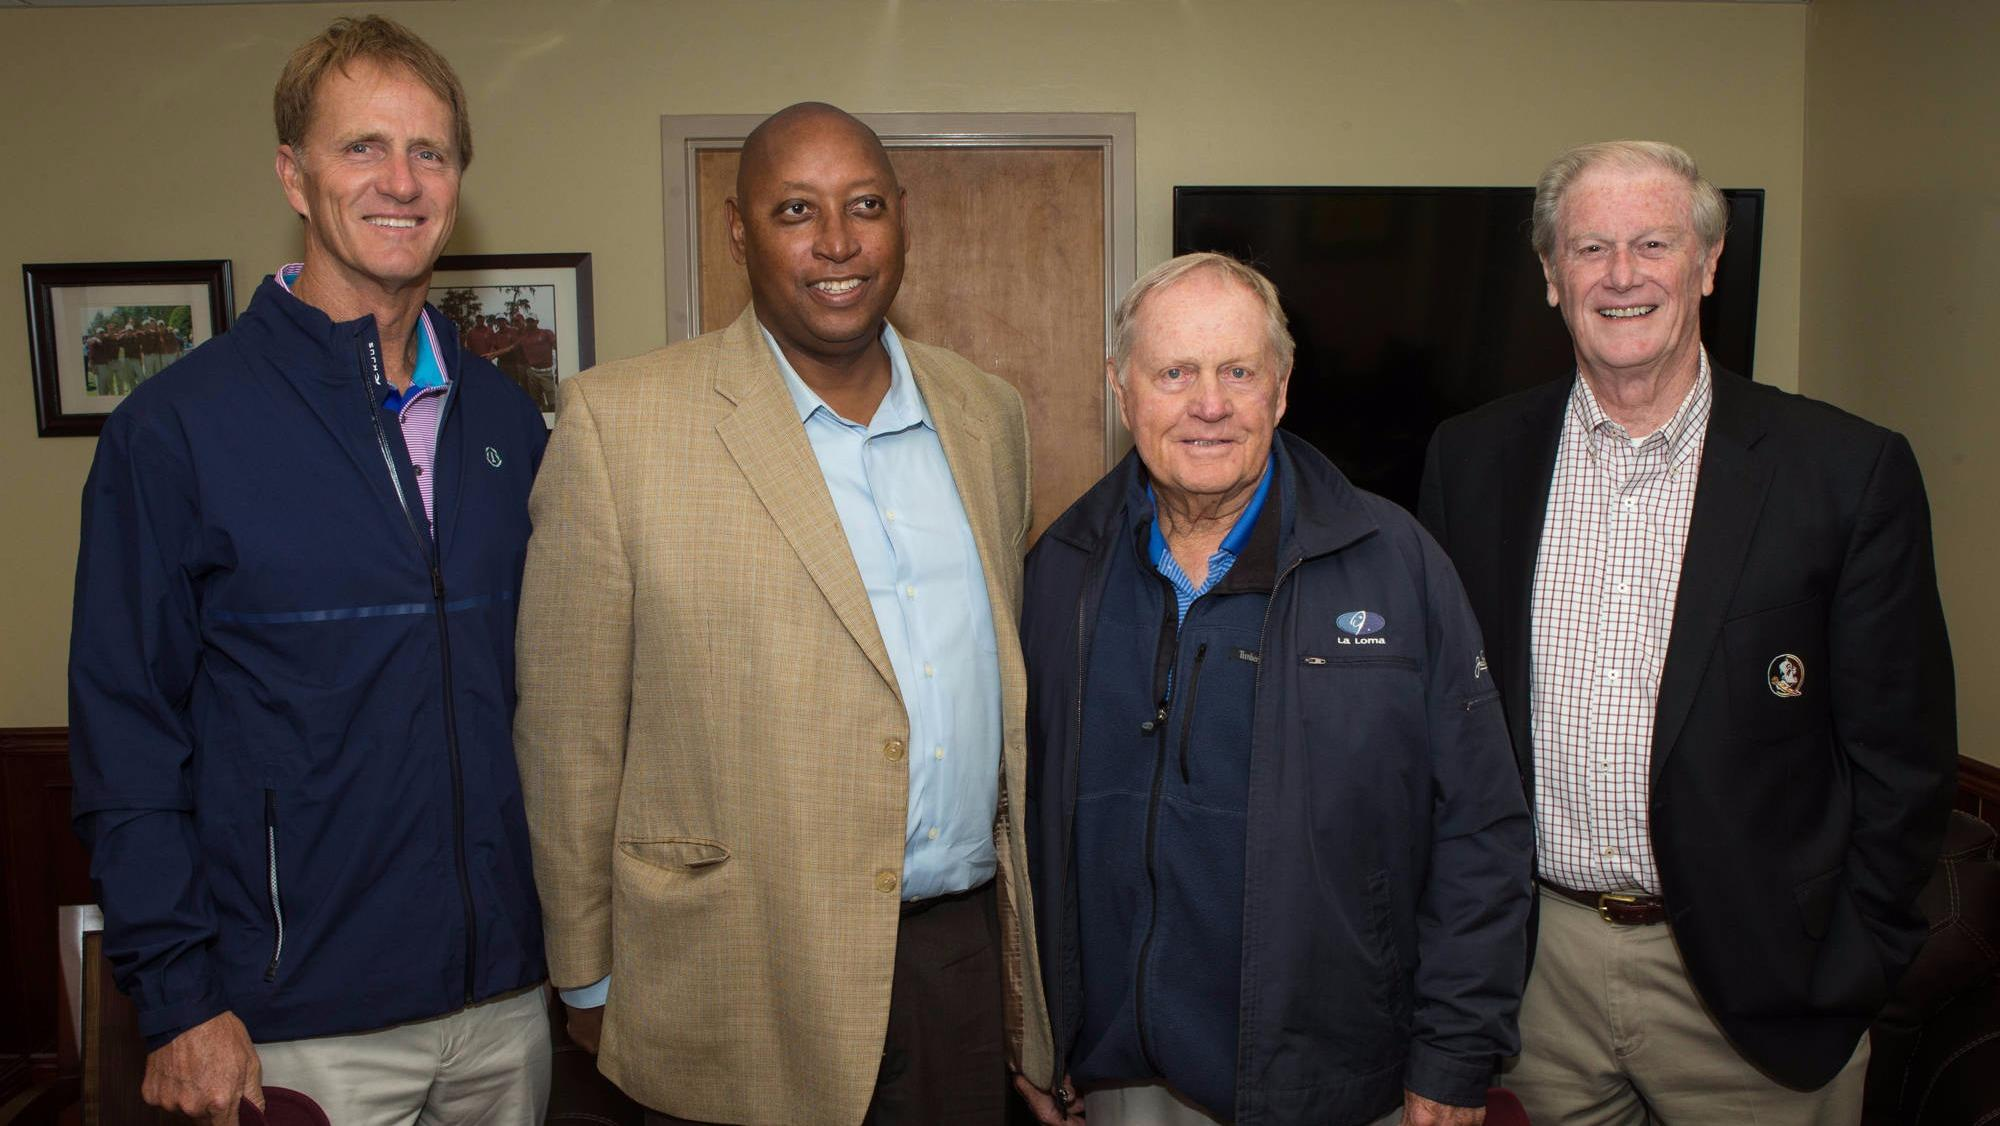 Jack Nicklaus II, FSU Athletics Director/Vice President Stan Wilcox, Jack Nicklaus and President John Thrasher.